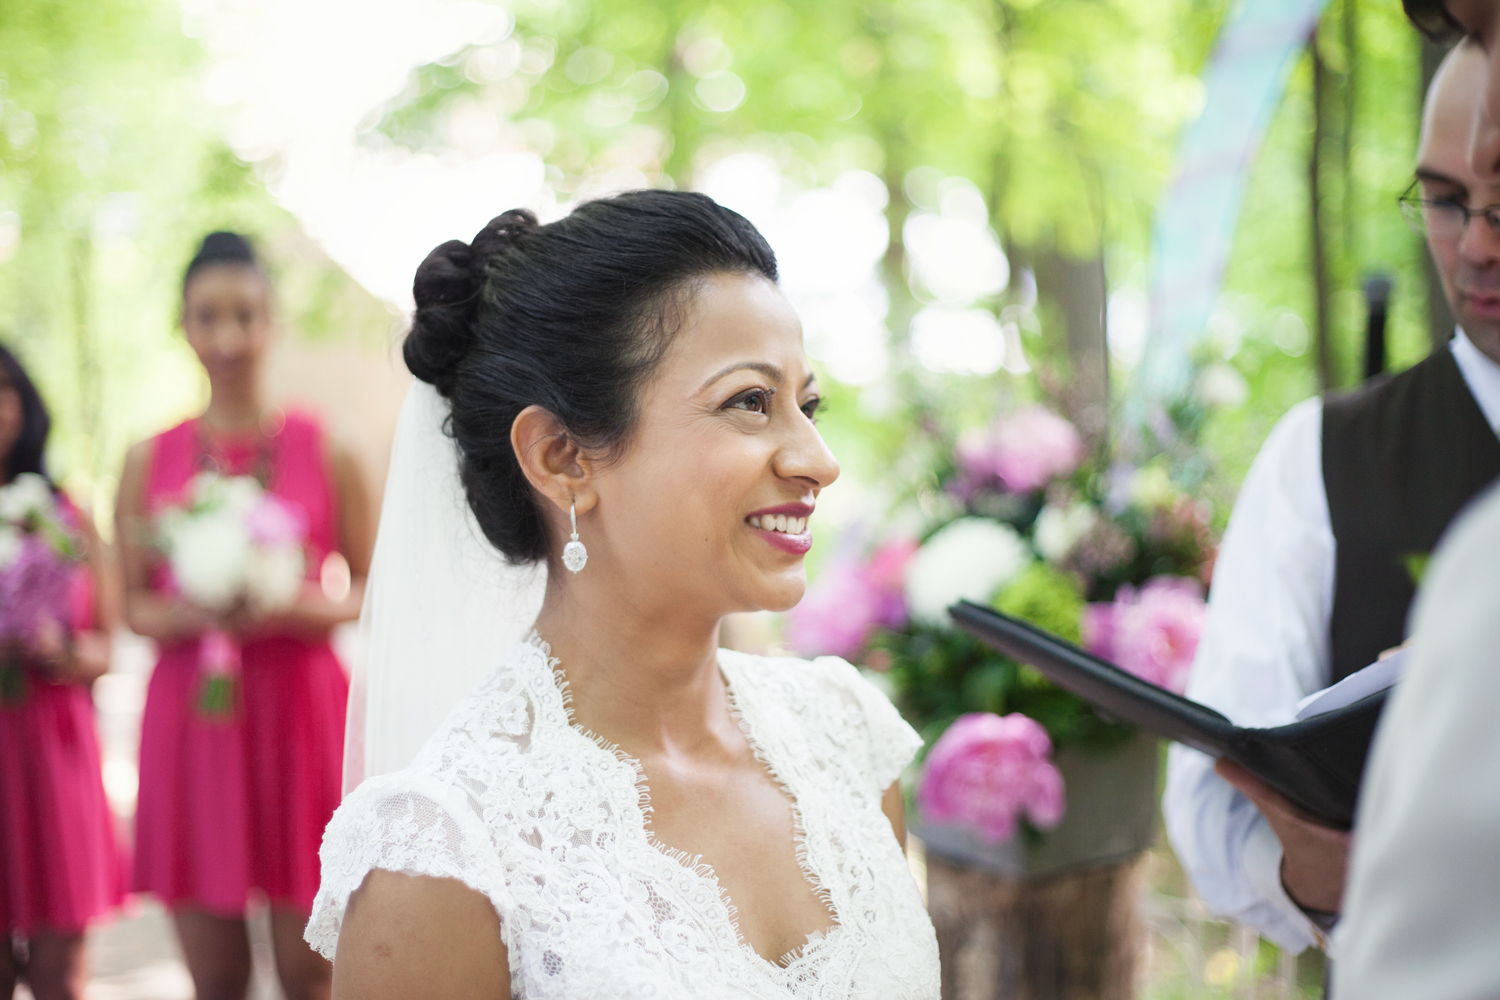 Portrait of smiling bride outdoors